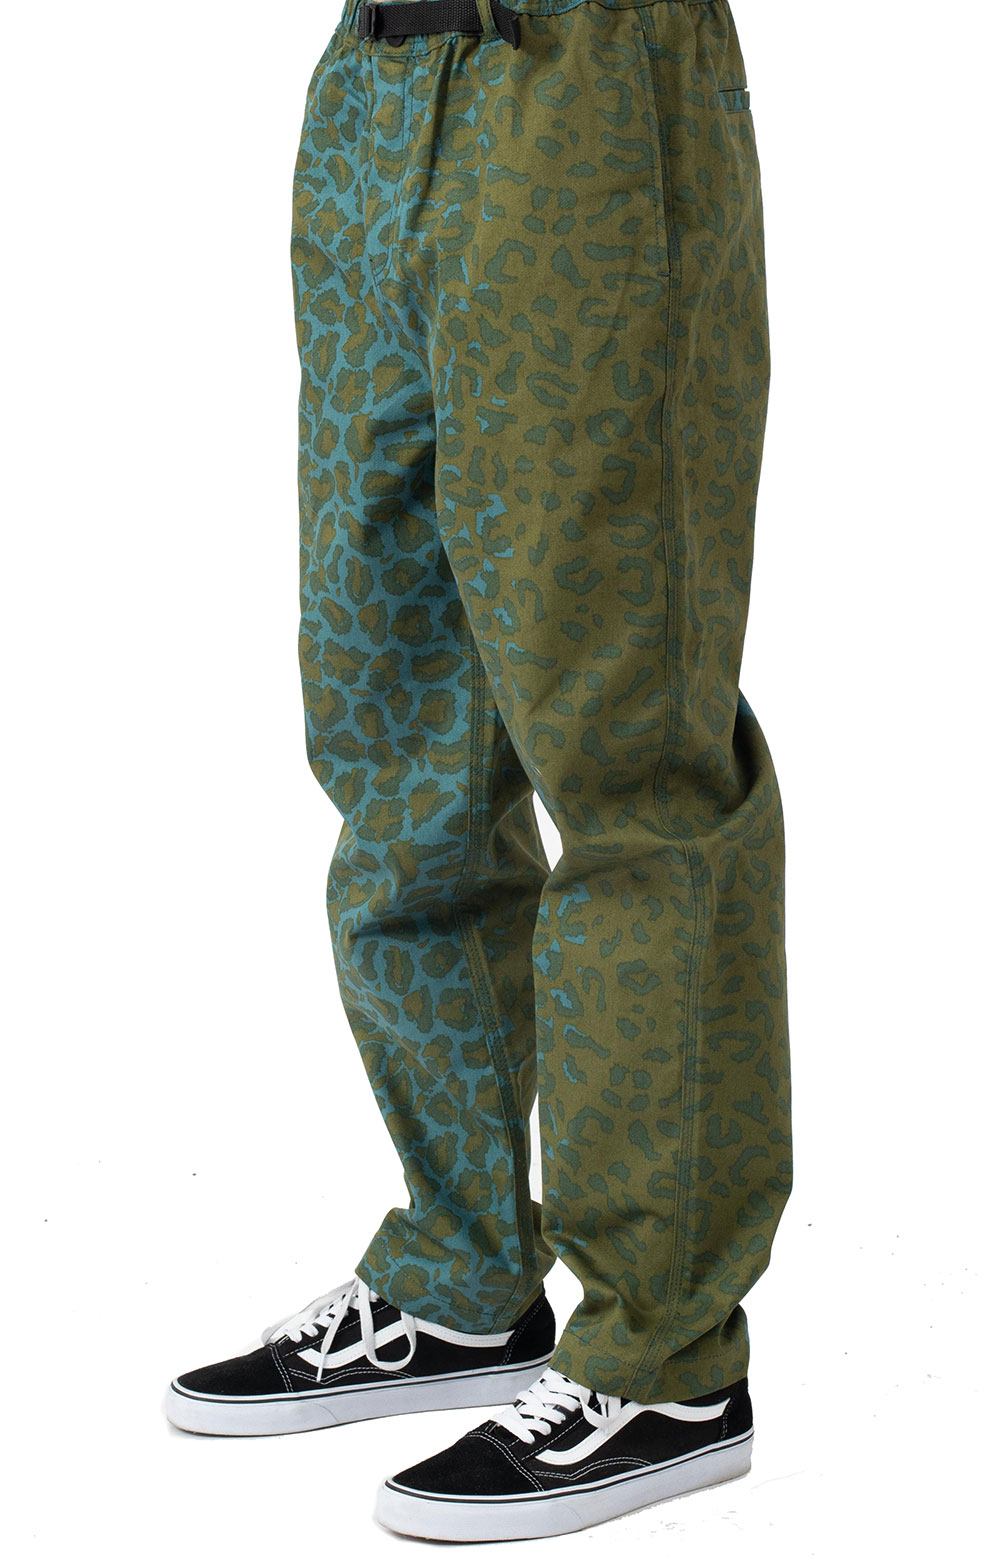 Printed Runyon Easy Pant - Leopard Camo  4